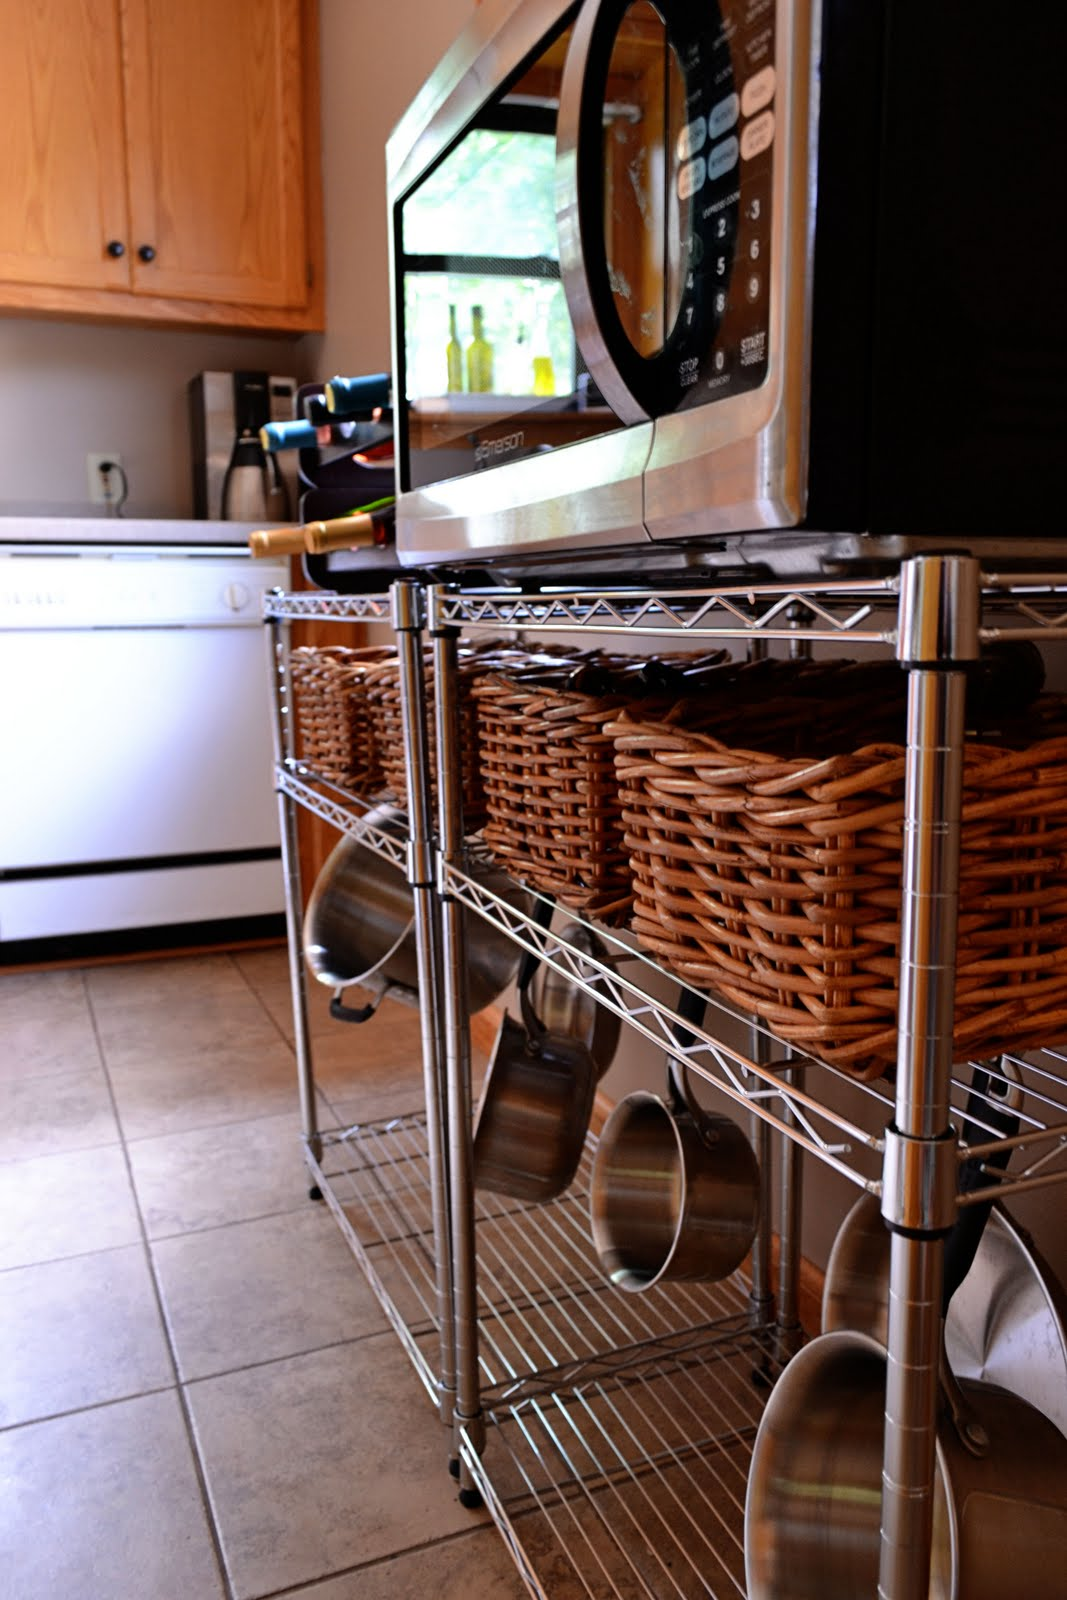 Microwave Stand Designs : Work with what you got microwave stand the domestic domicile